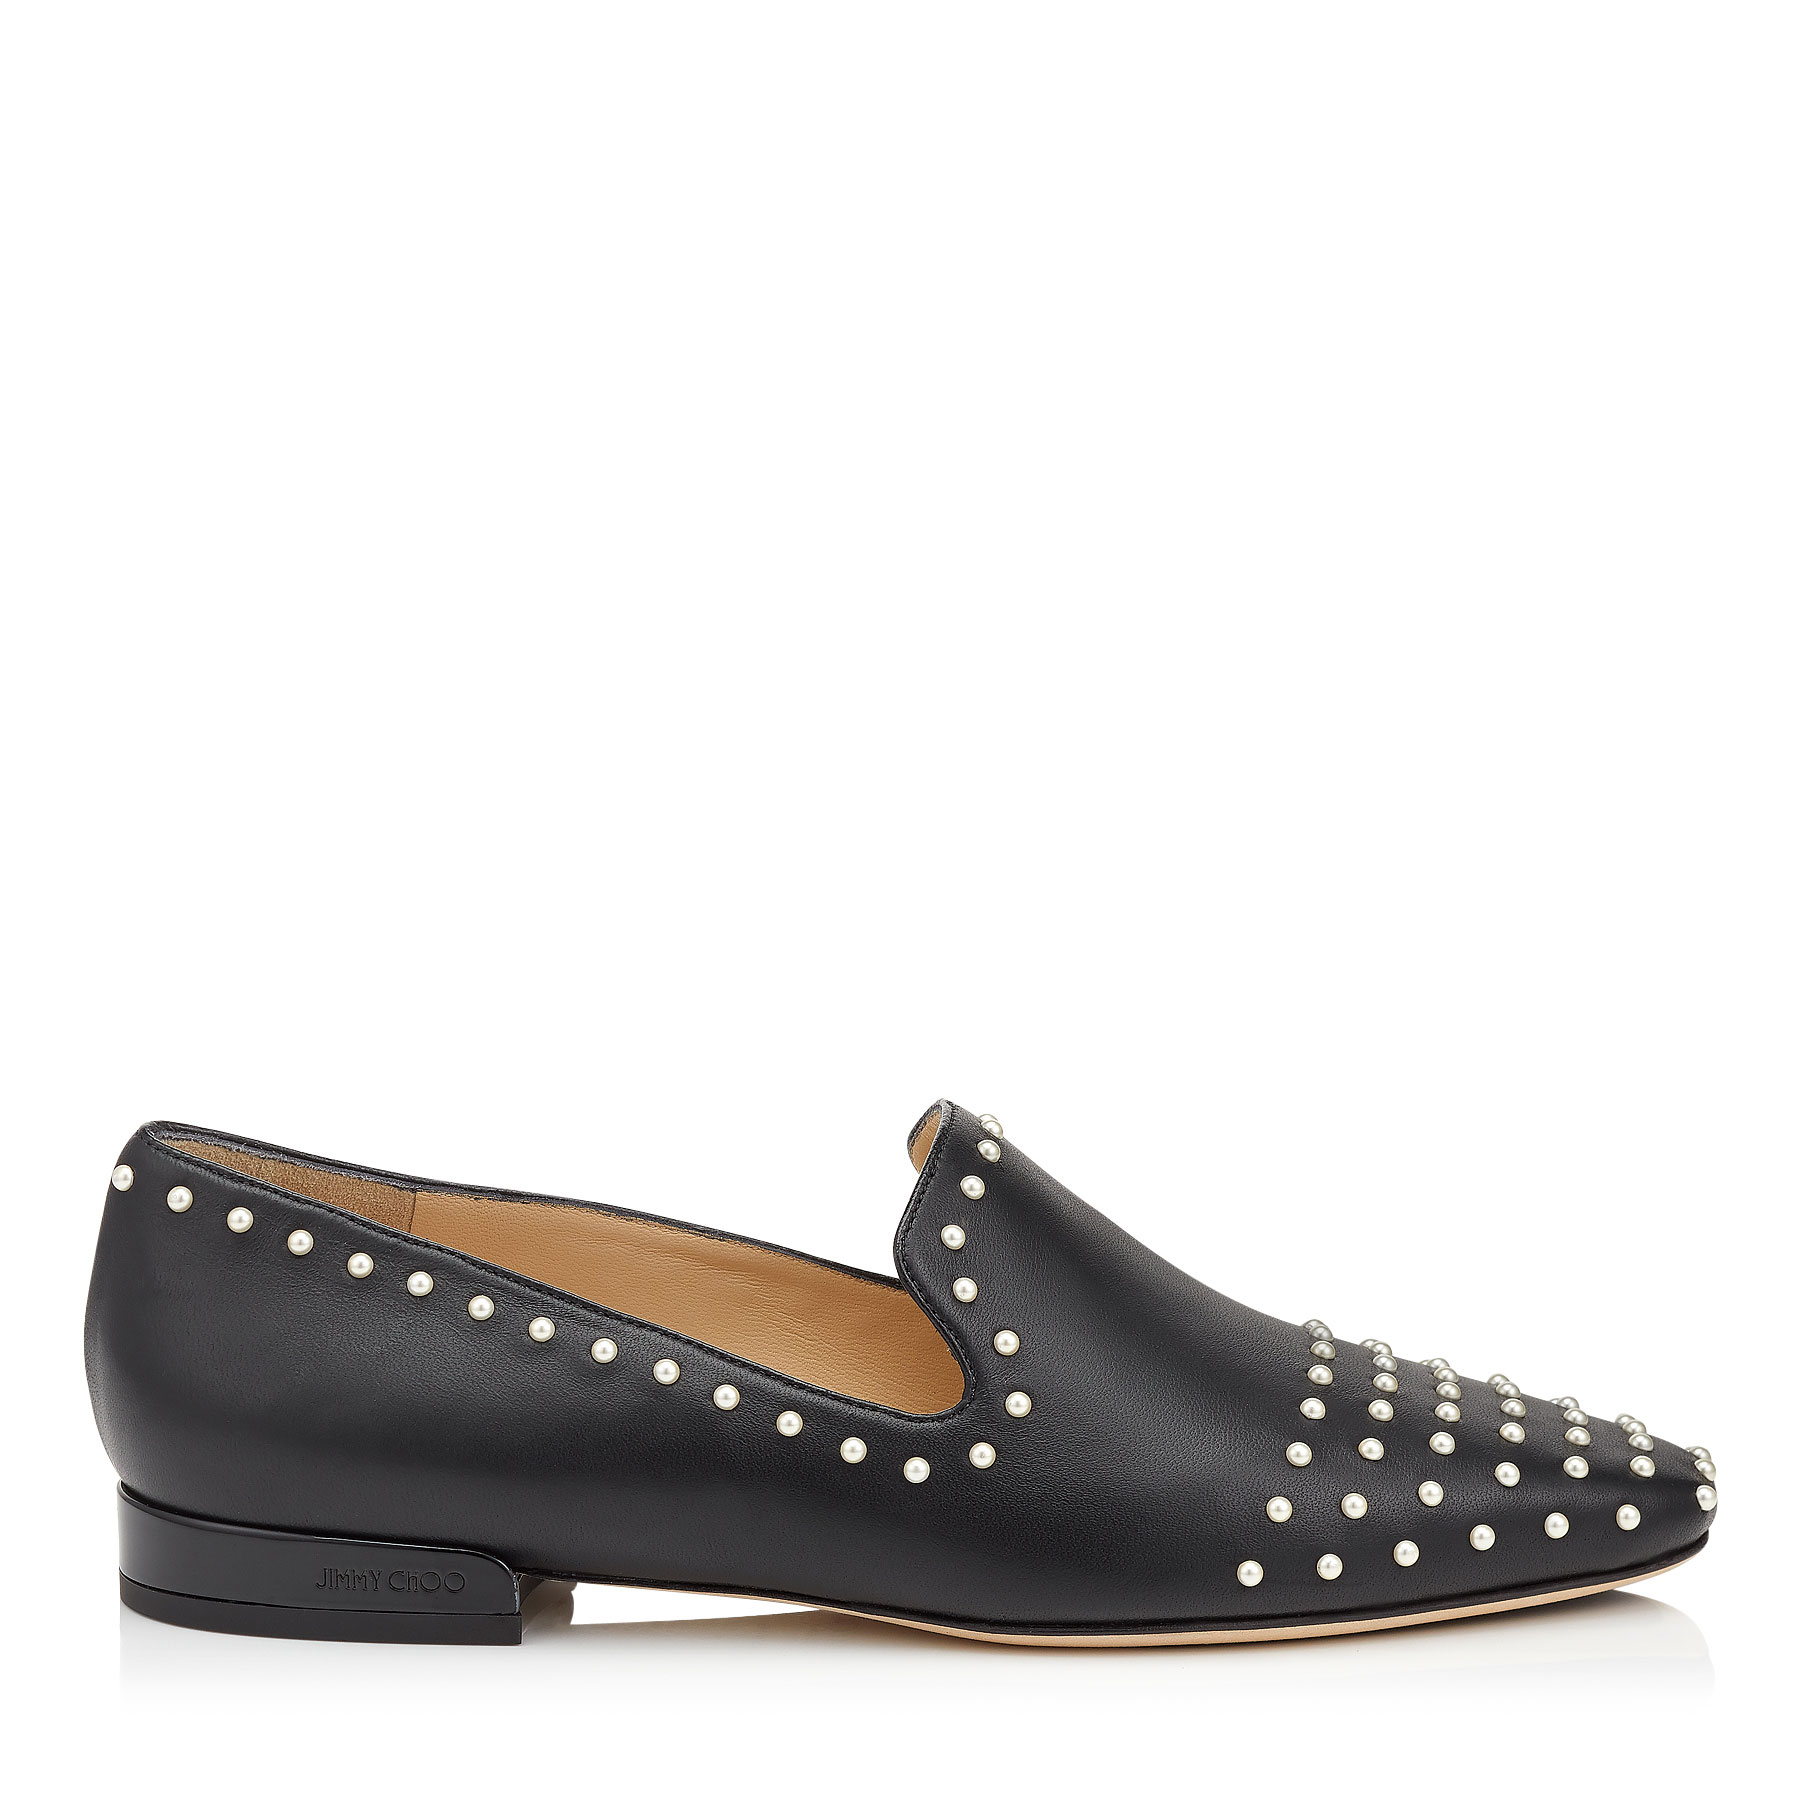 JAIDA FLAT Black Leather Pearl Slippers by Jimmy Choo